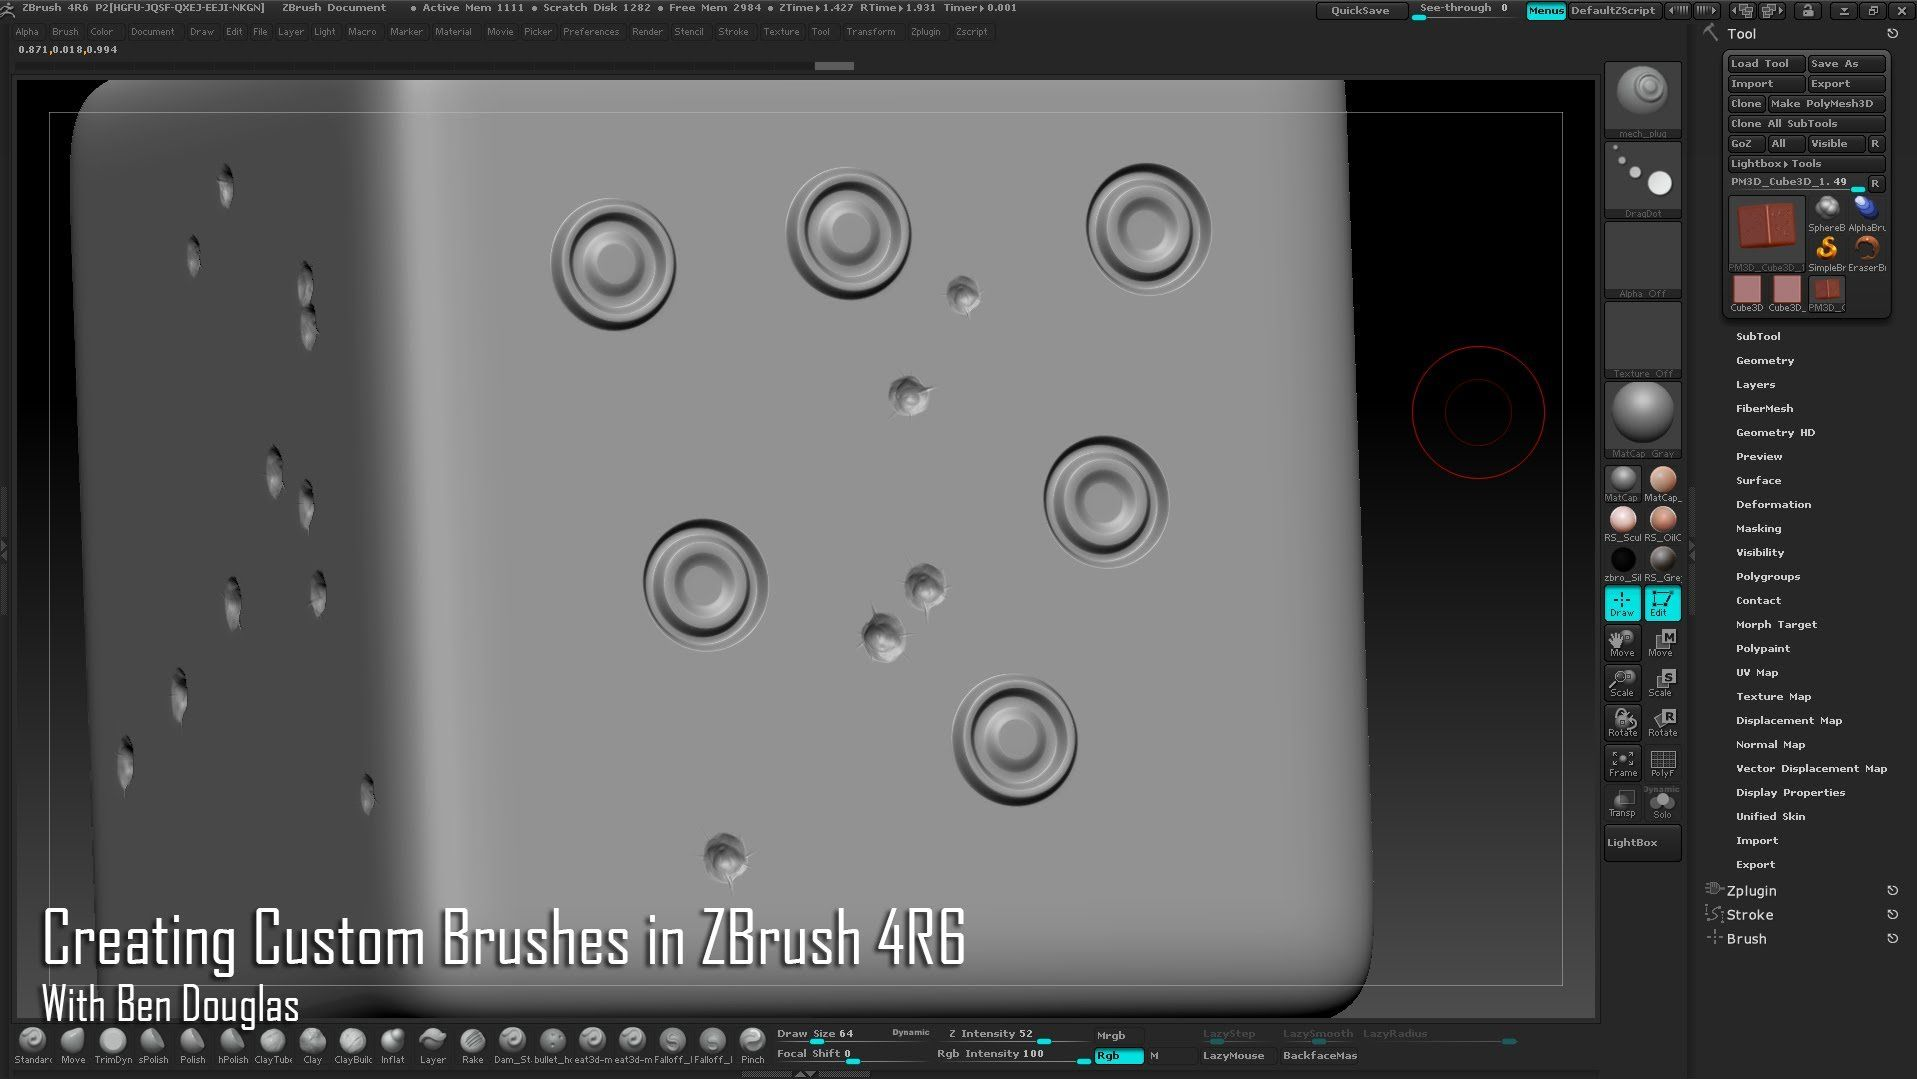 20+ Custom Zbrush Brushes Pictures and Ideas on Weric